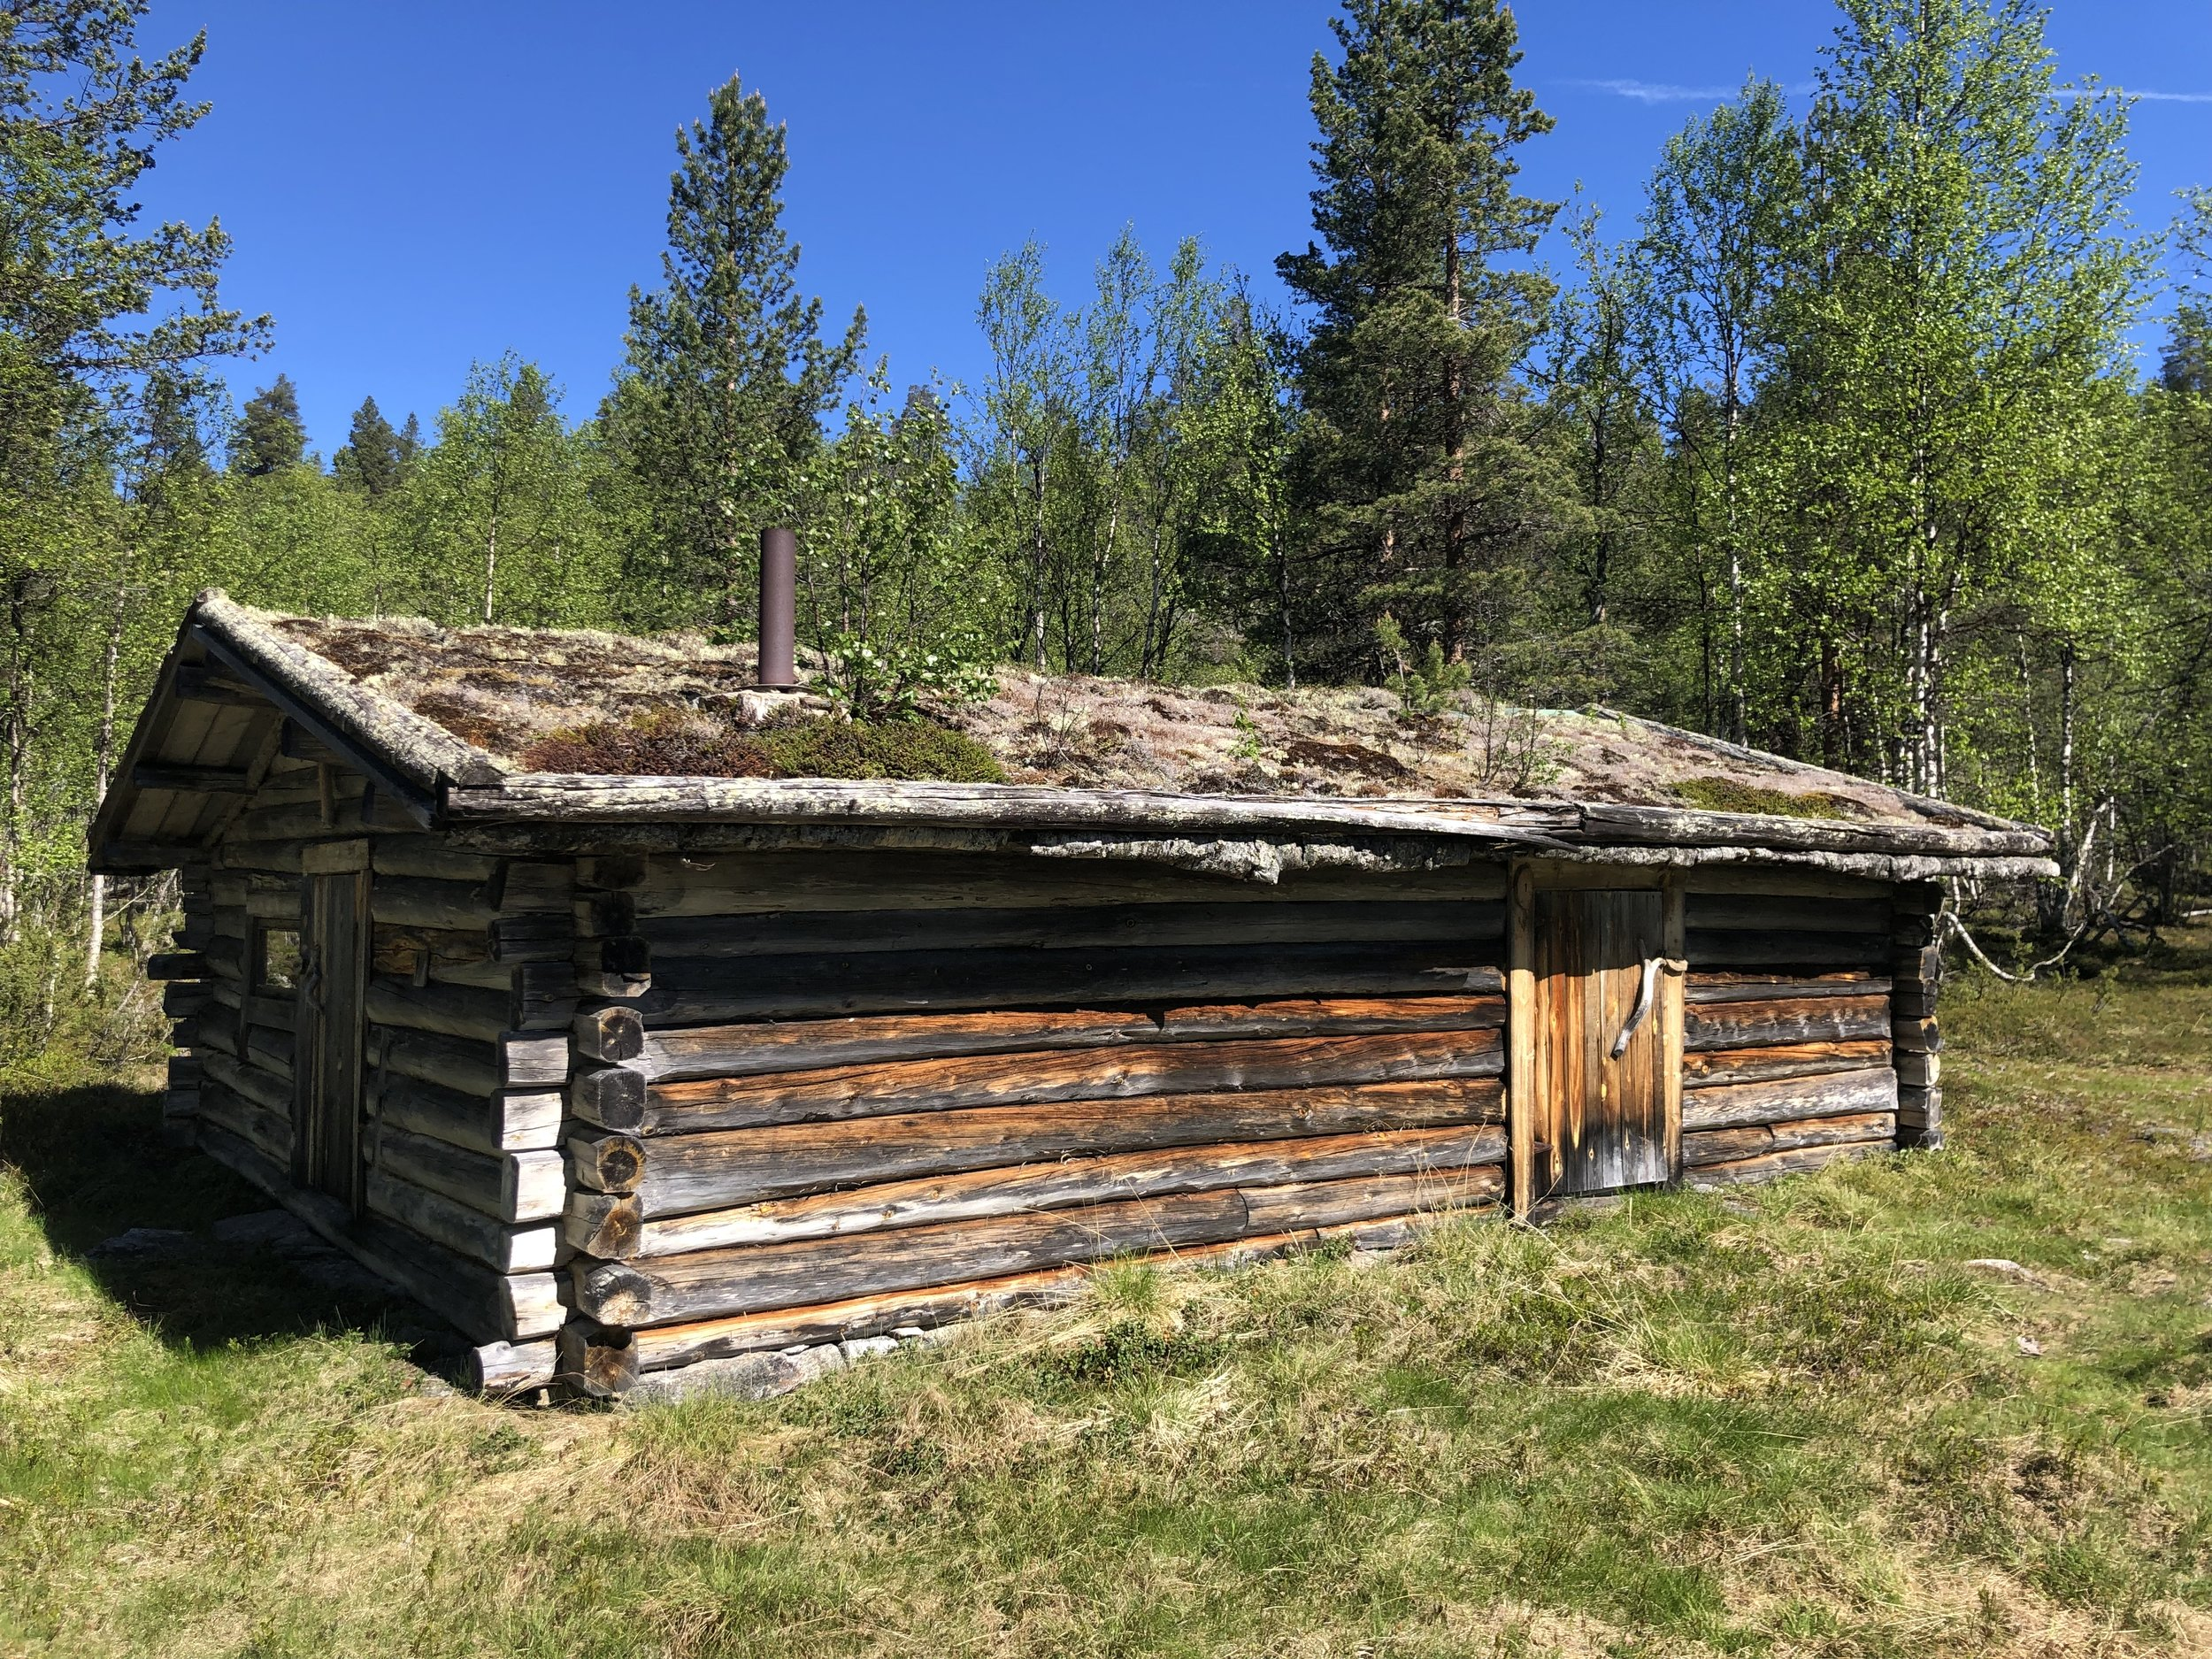 A hut near the corrals, which still used by the Sami during the annual roundups.